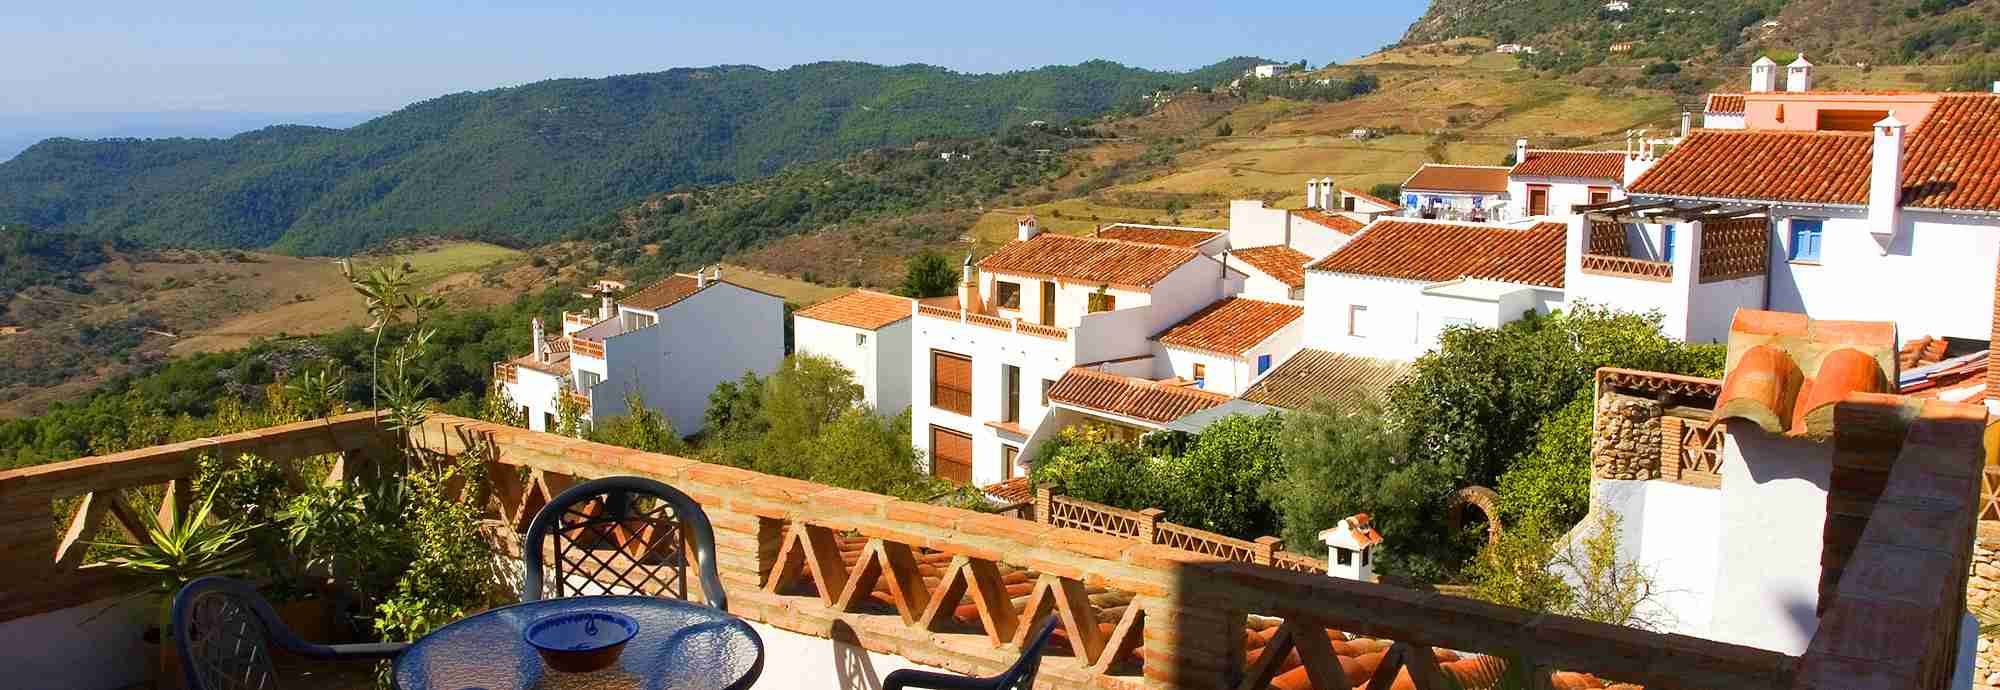 Holiday home with twin terraces in Gaucin village, Ronda Mountains